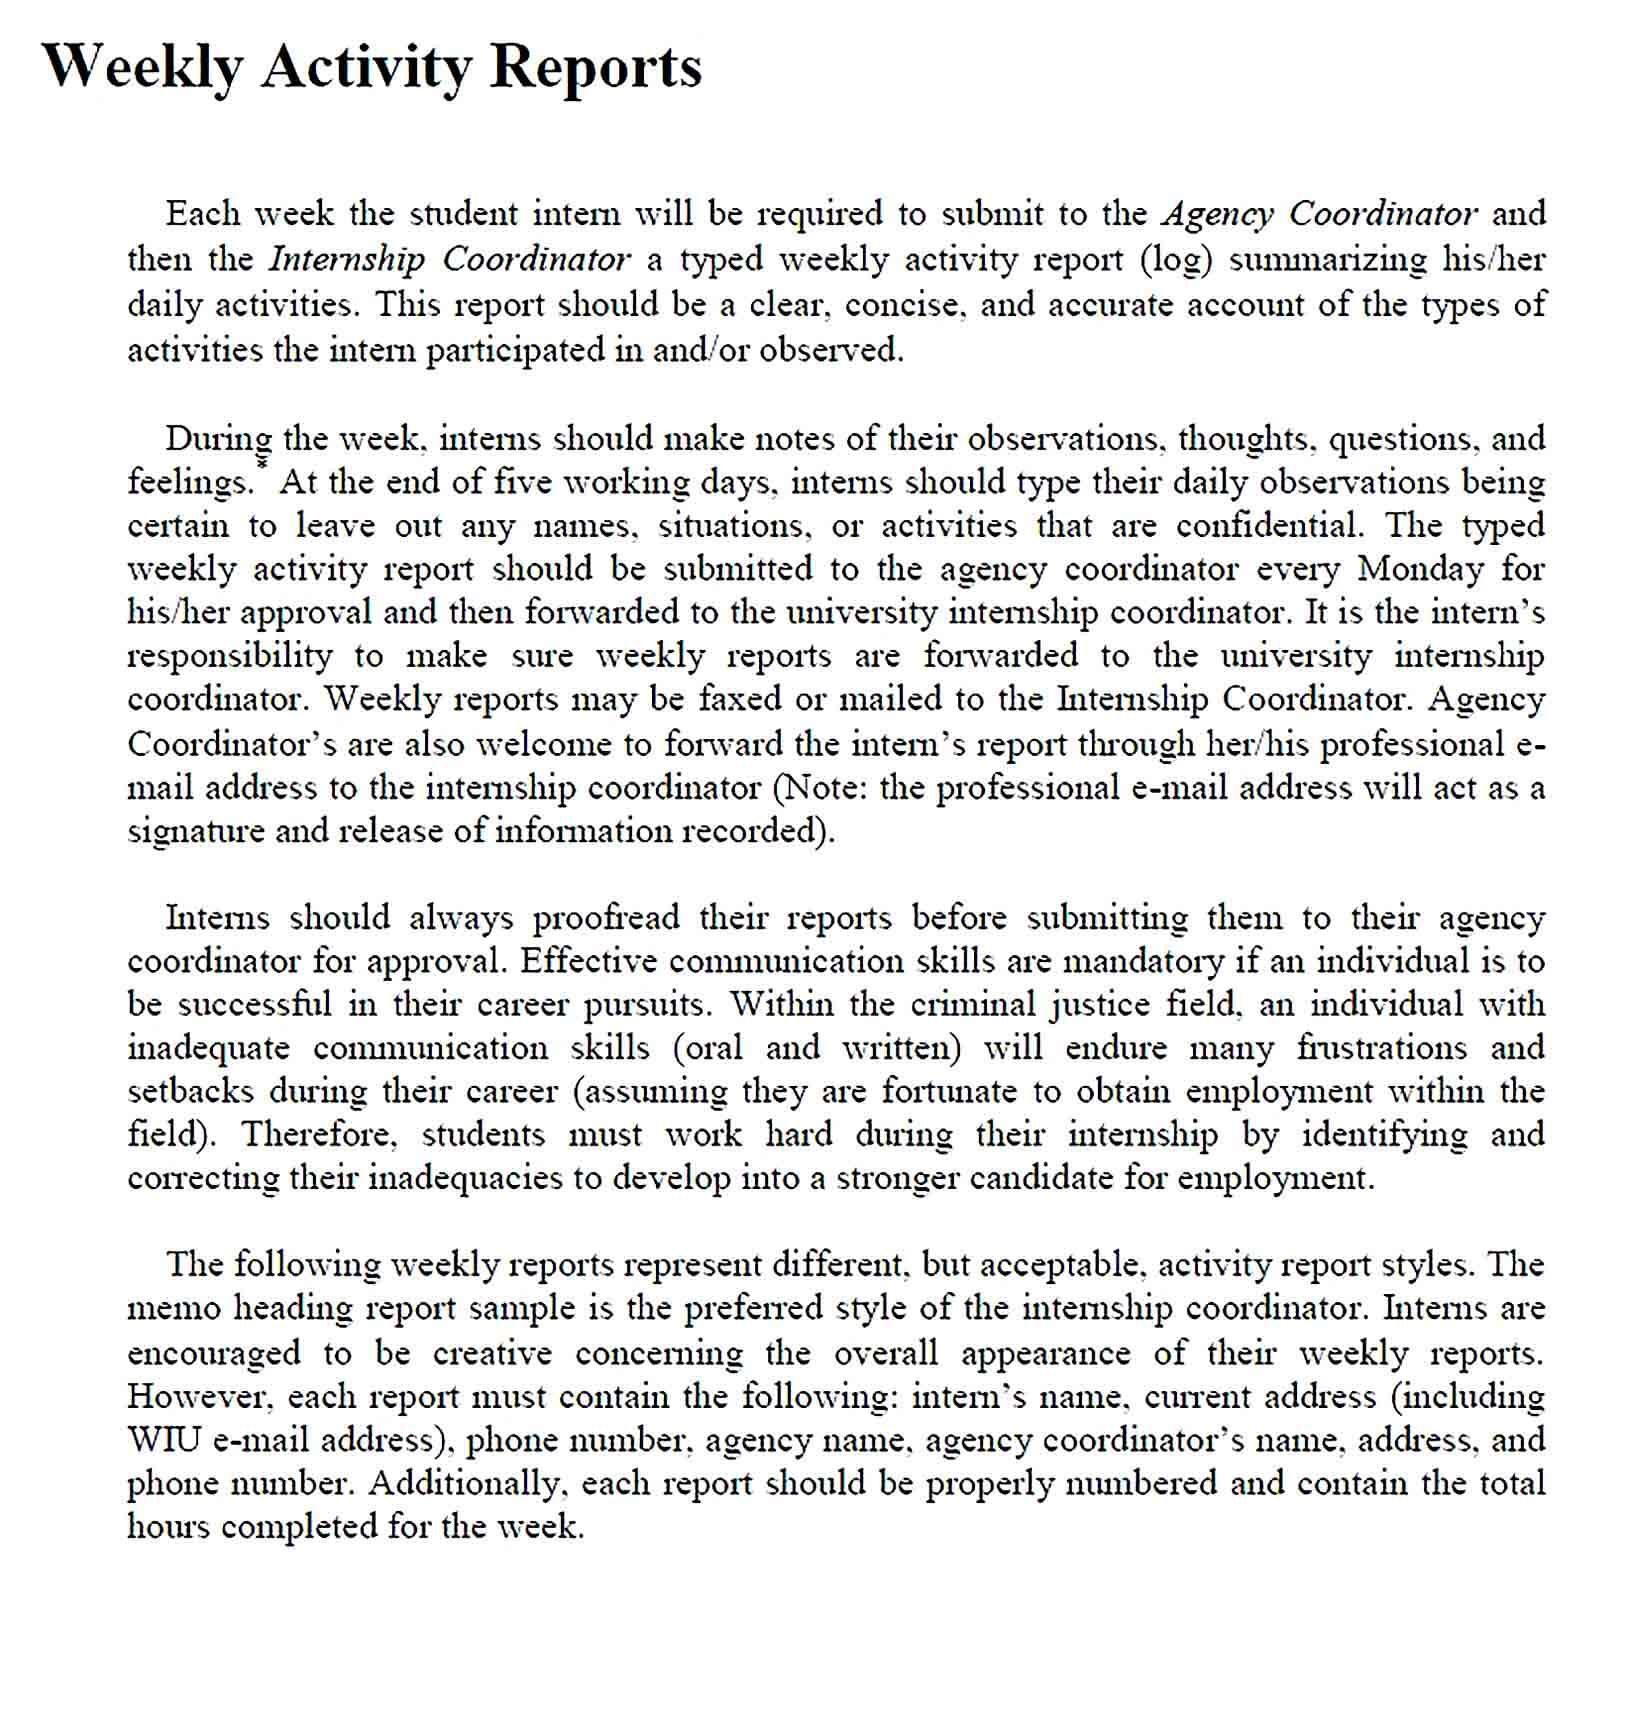 Sample Weekly Activity Report in PDF